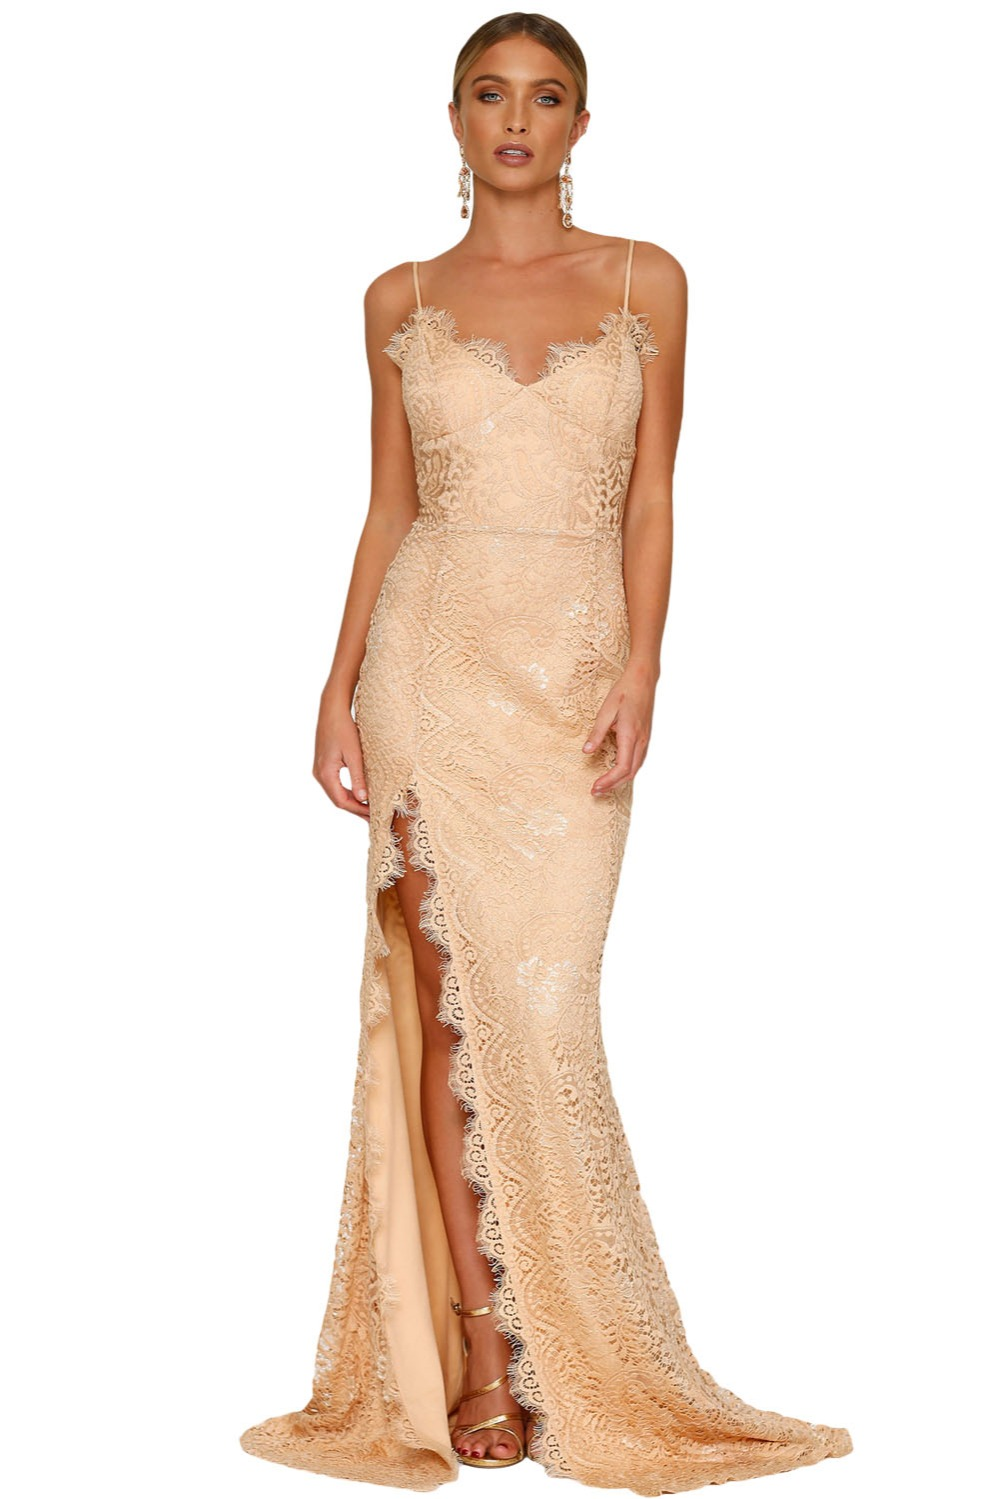 Compare Prices on Nude Gown- Online Shopping/Buy Low Price Nude ...